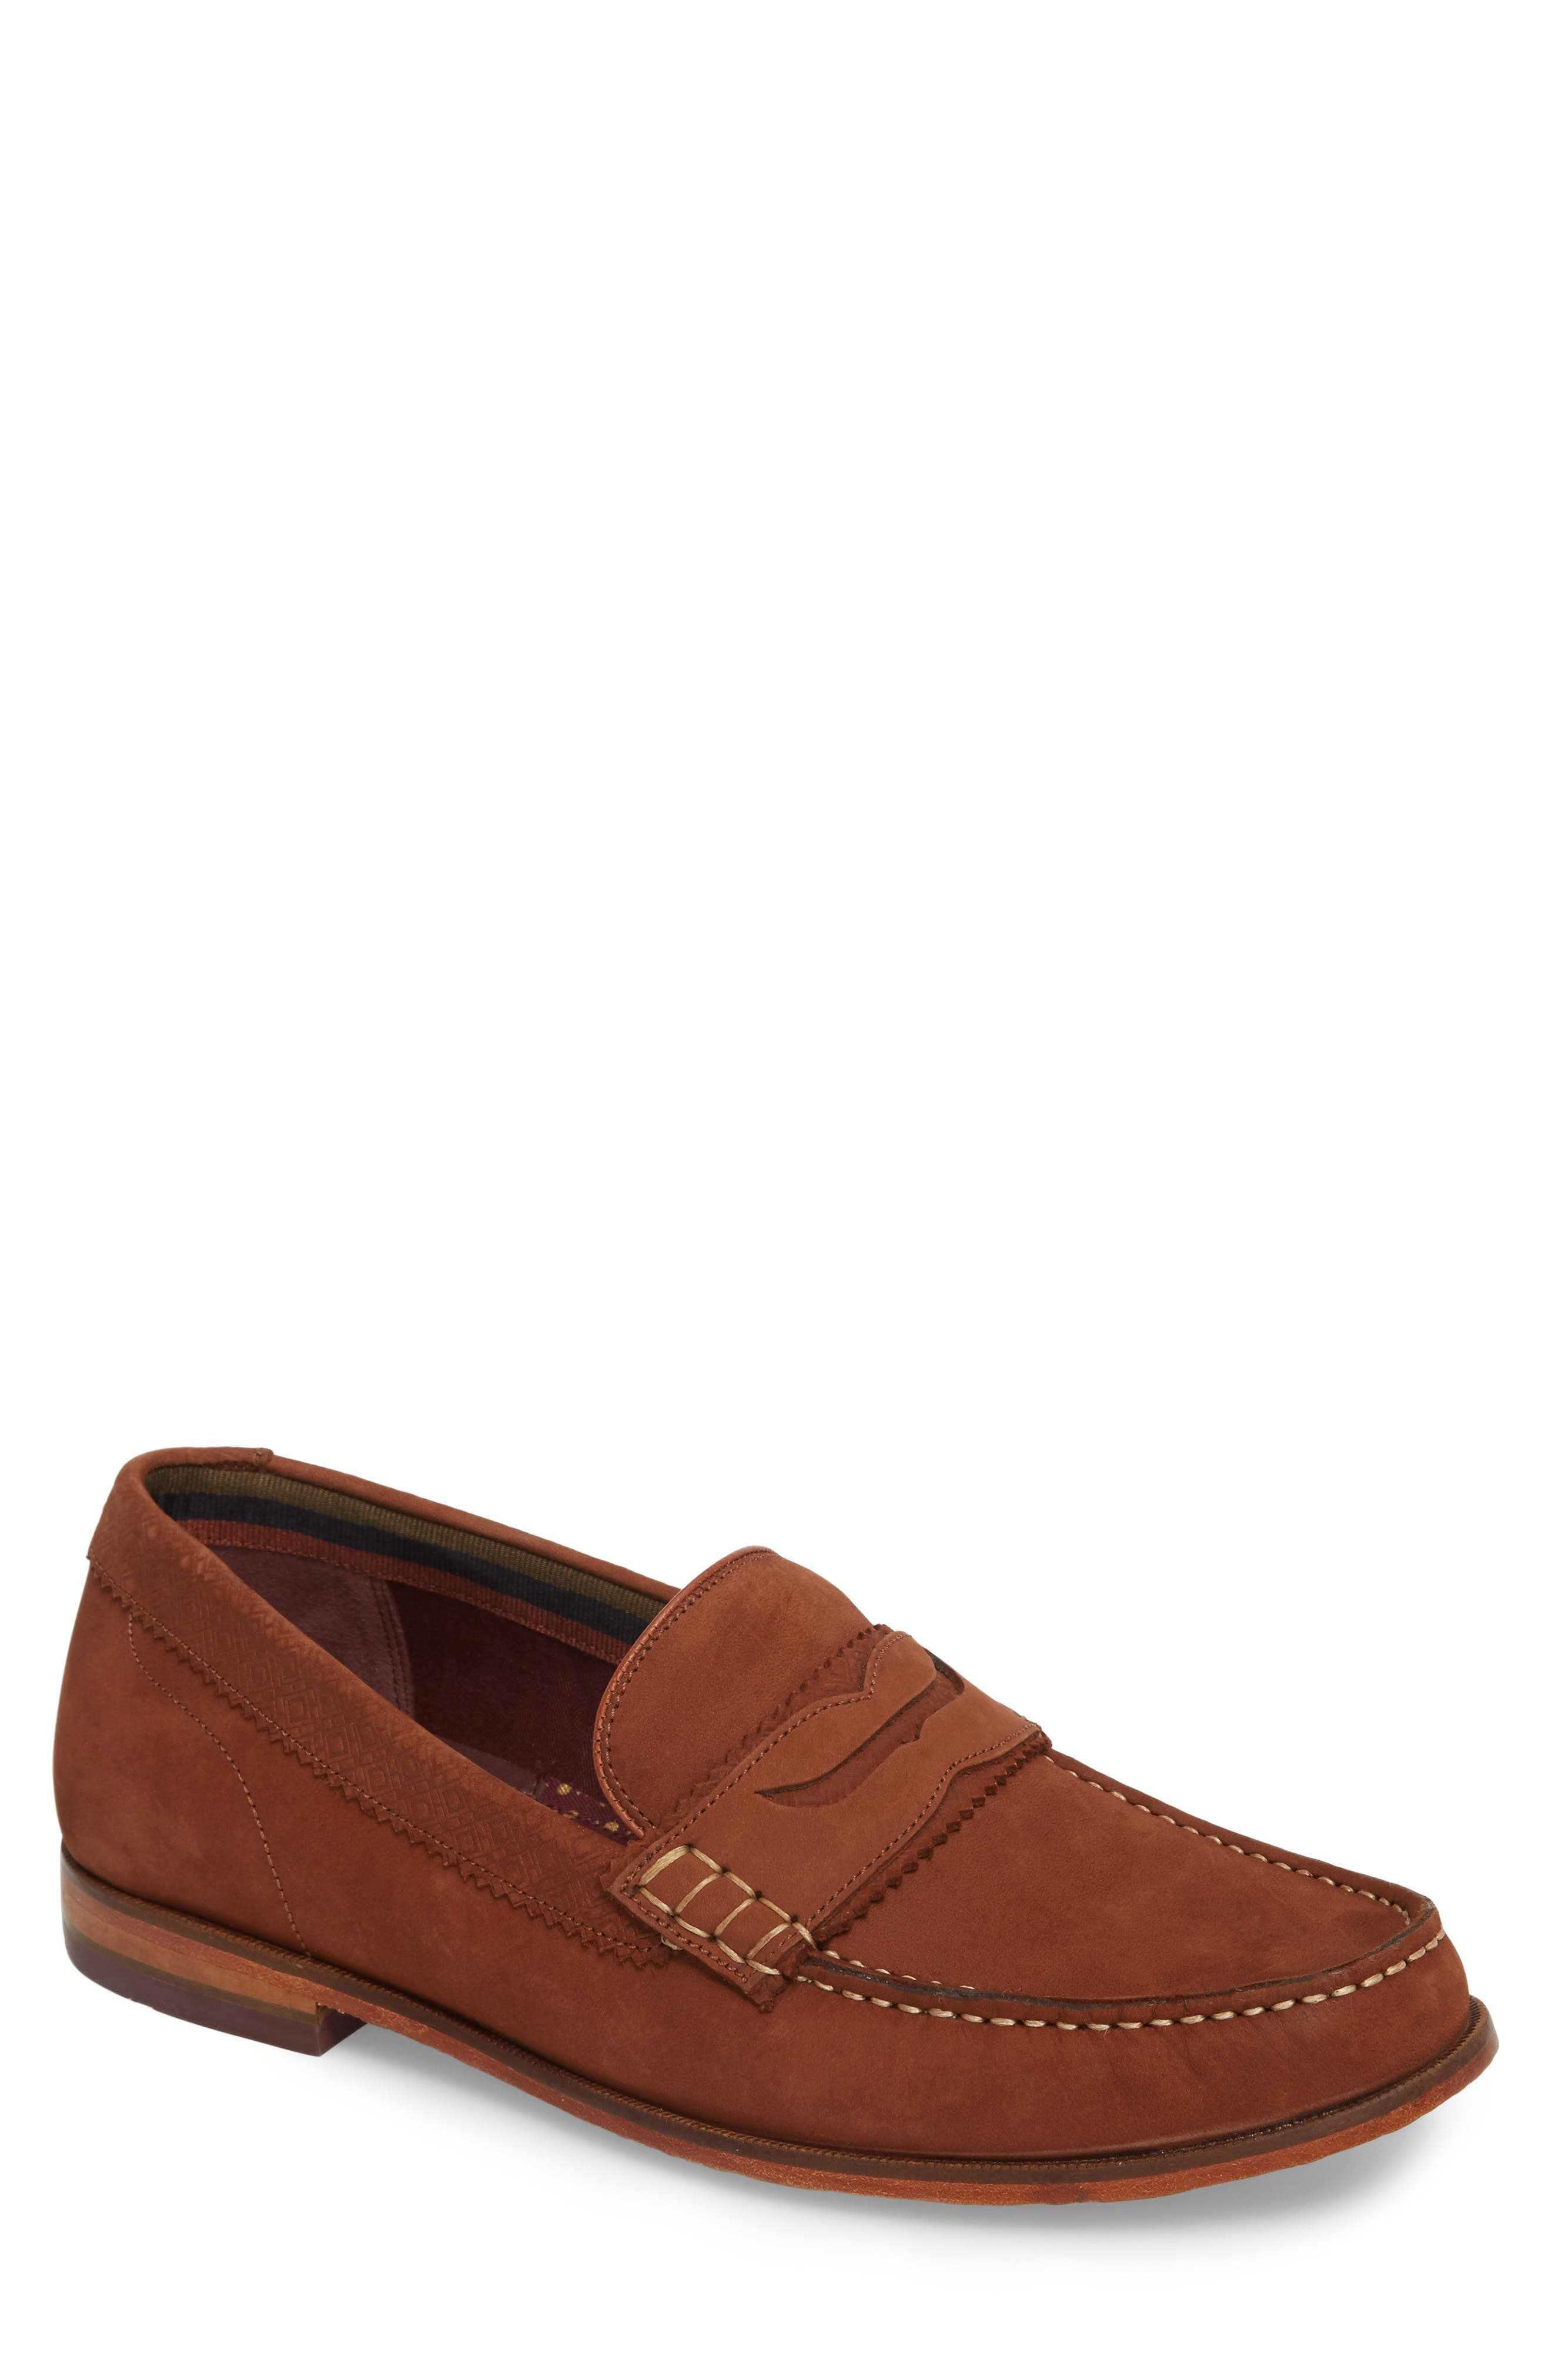 Miicke 5 Penny Loafer,                         Main,                         color, 209